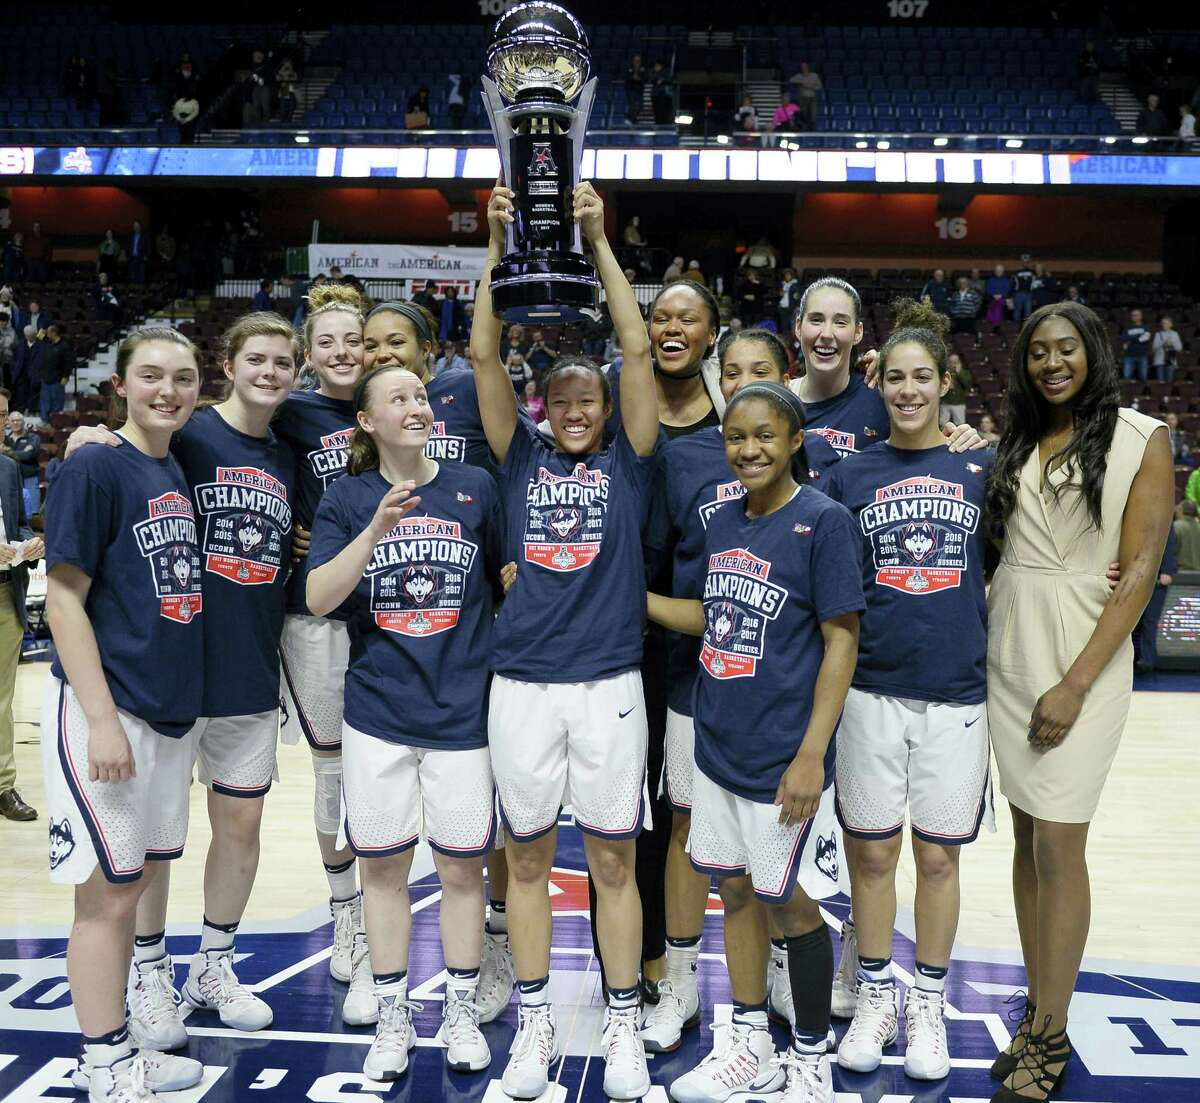 The Connecticut women's basketball team pose with the American Athletic Conference championship trophy after defeating South Florida in an NCAA college basketball game tournament final at Mohegan Sun Arena, March 6 in Uncasville, Conn.